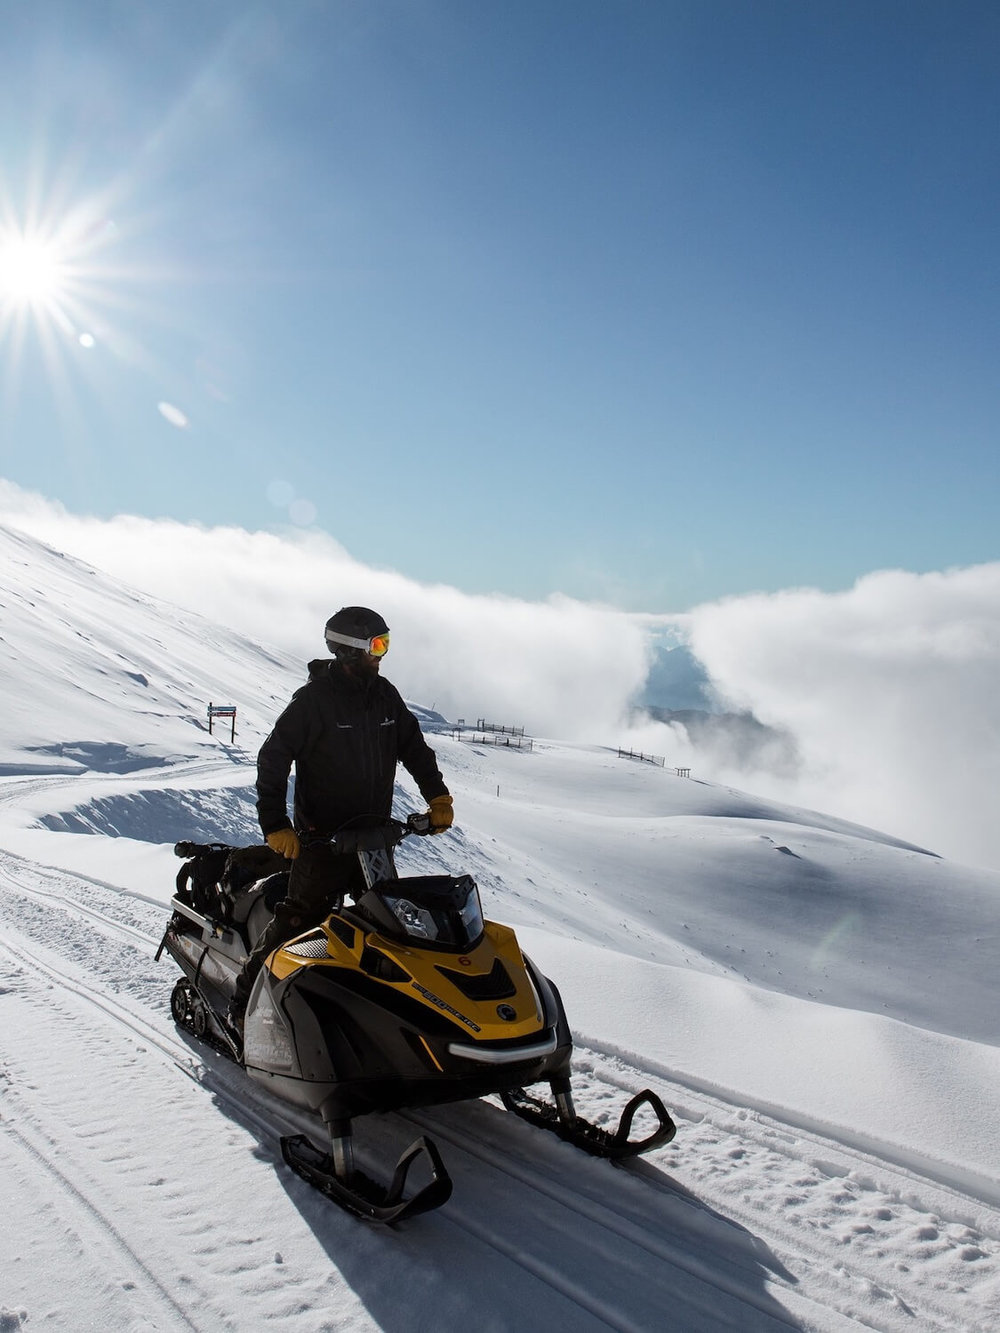 STAFF AT WANAKA'S TREBLE CONE HAVE BEEN WORKING AROUND THE CLOCK TO GET THE MOUNTAIN READY FOR OPENING ON SATURDAY JUNE 23. PHOTO: JACKSON LANA